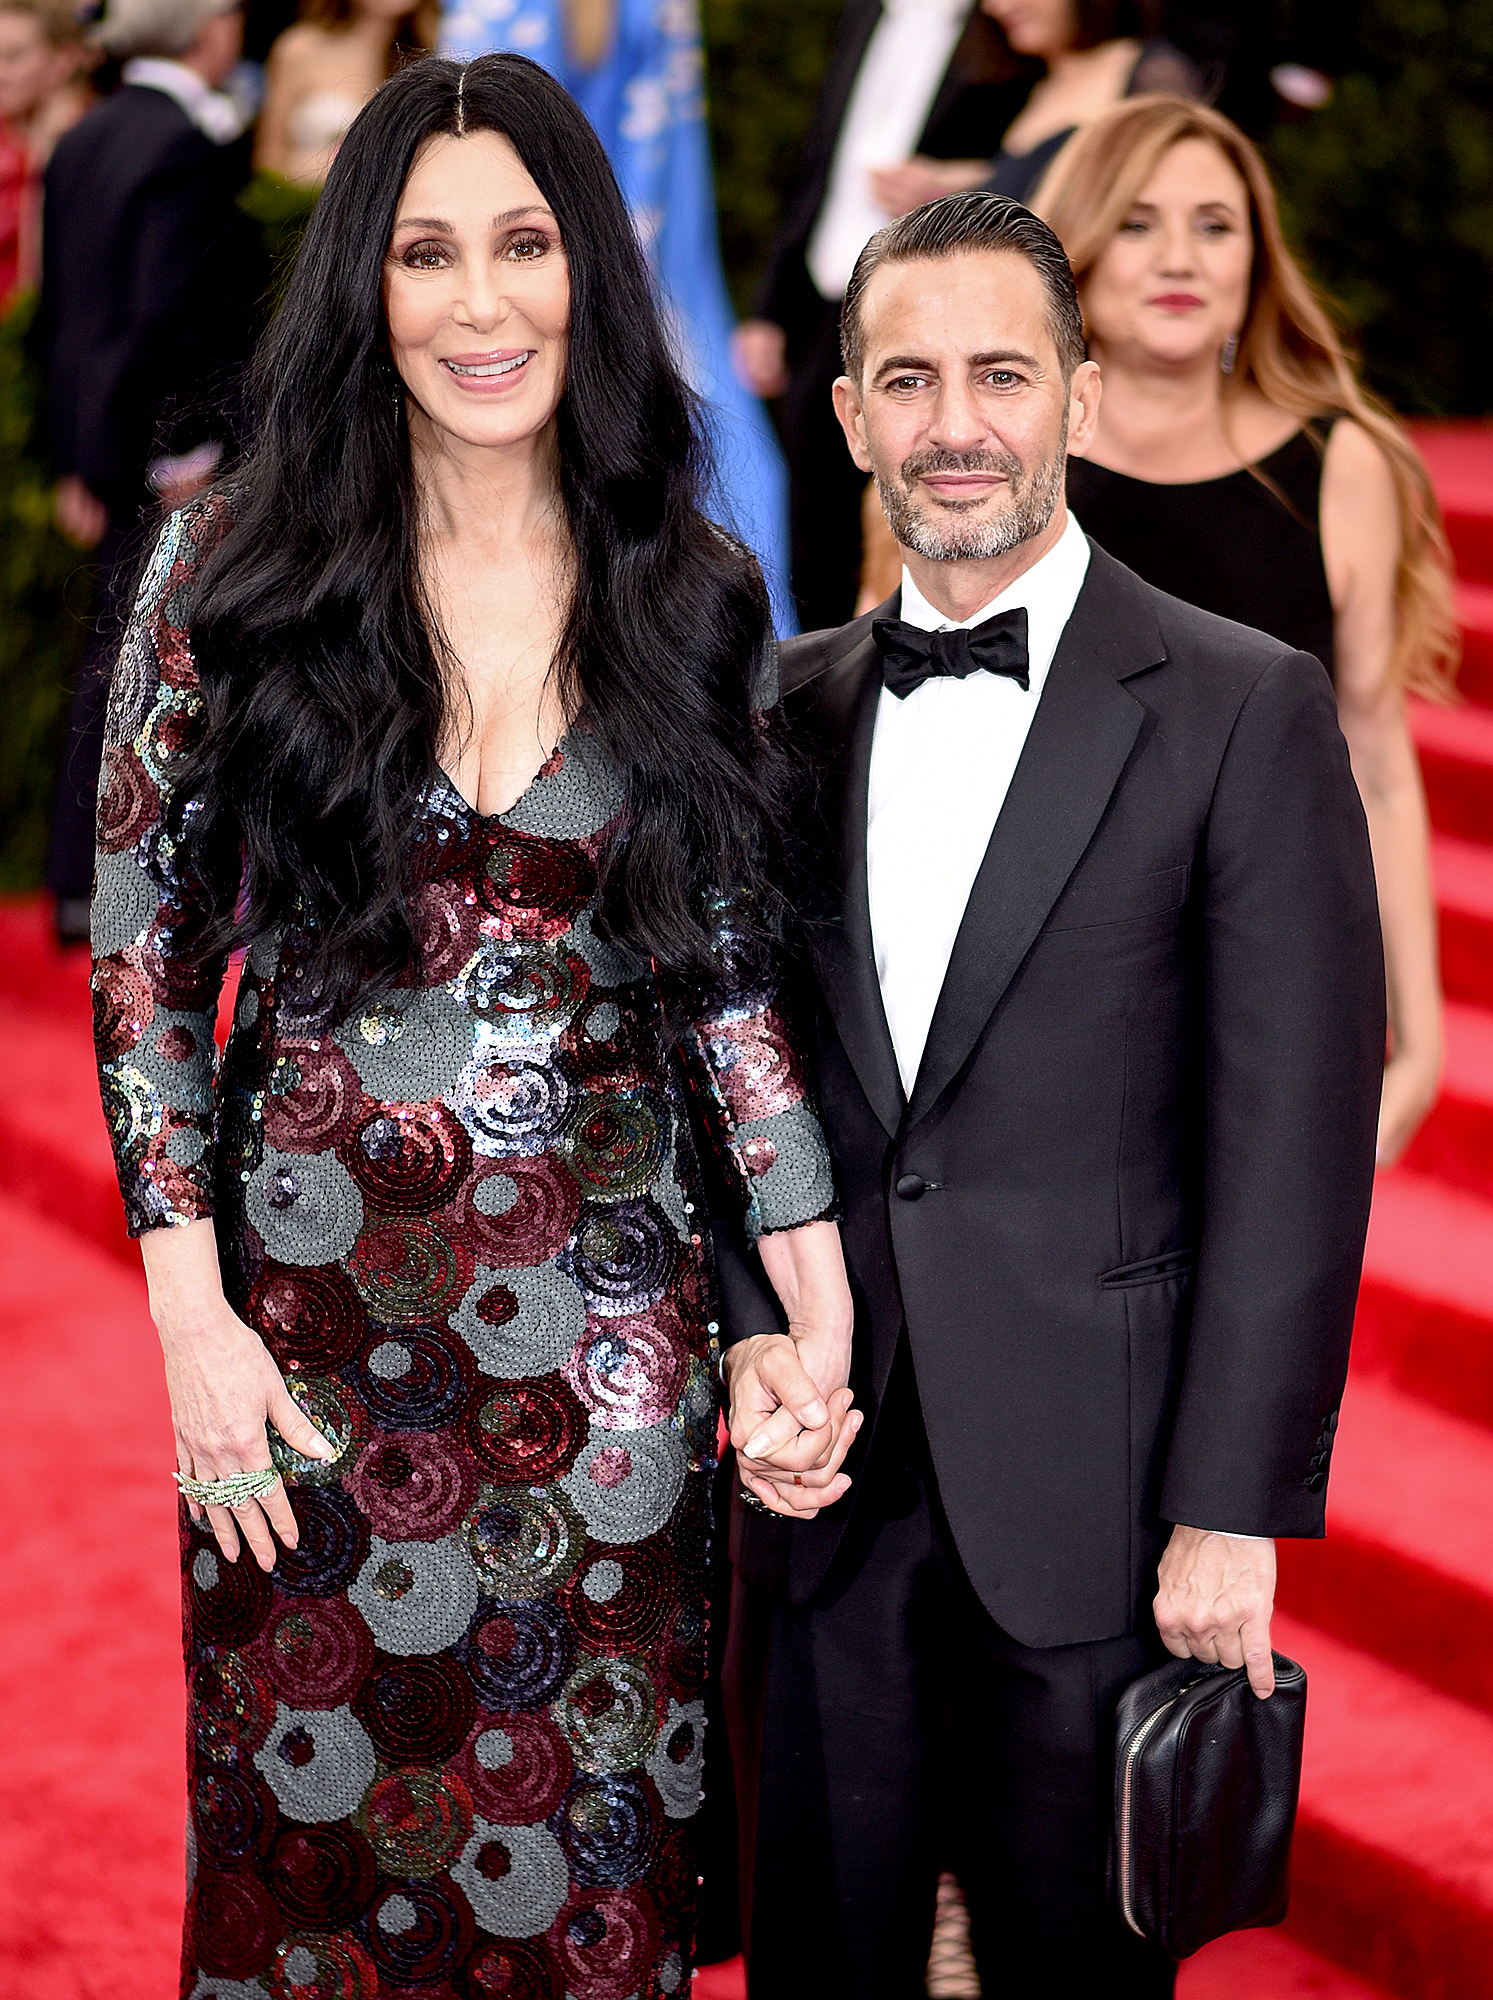 2015-Cher - For the 2015 Met Gala, the Mermaid's actress wore a Marc Jacobs sequin-covered gown that was a bit more tame than her usual picks.